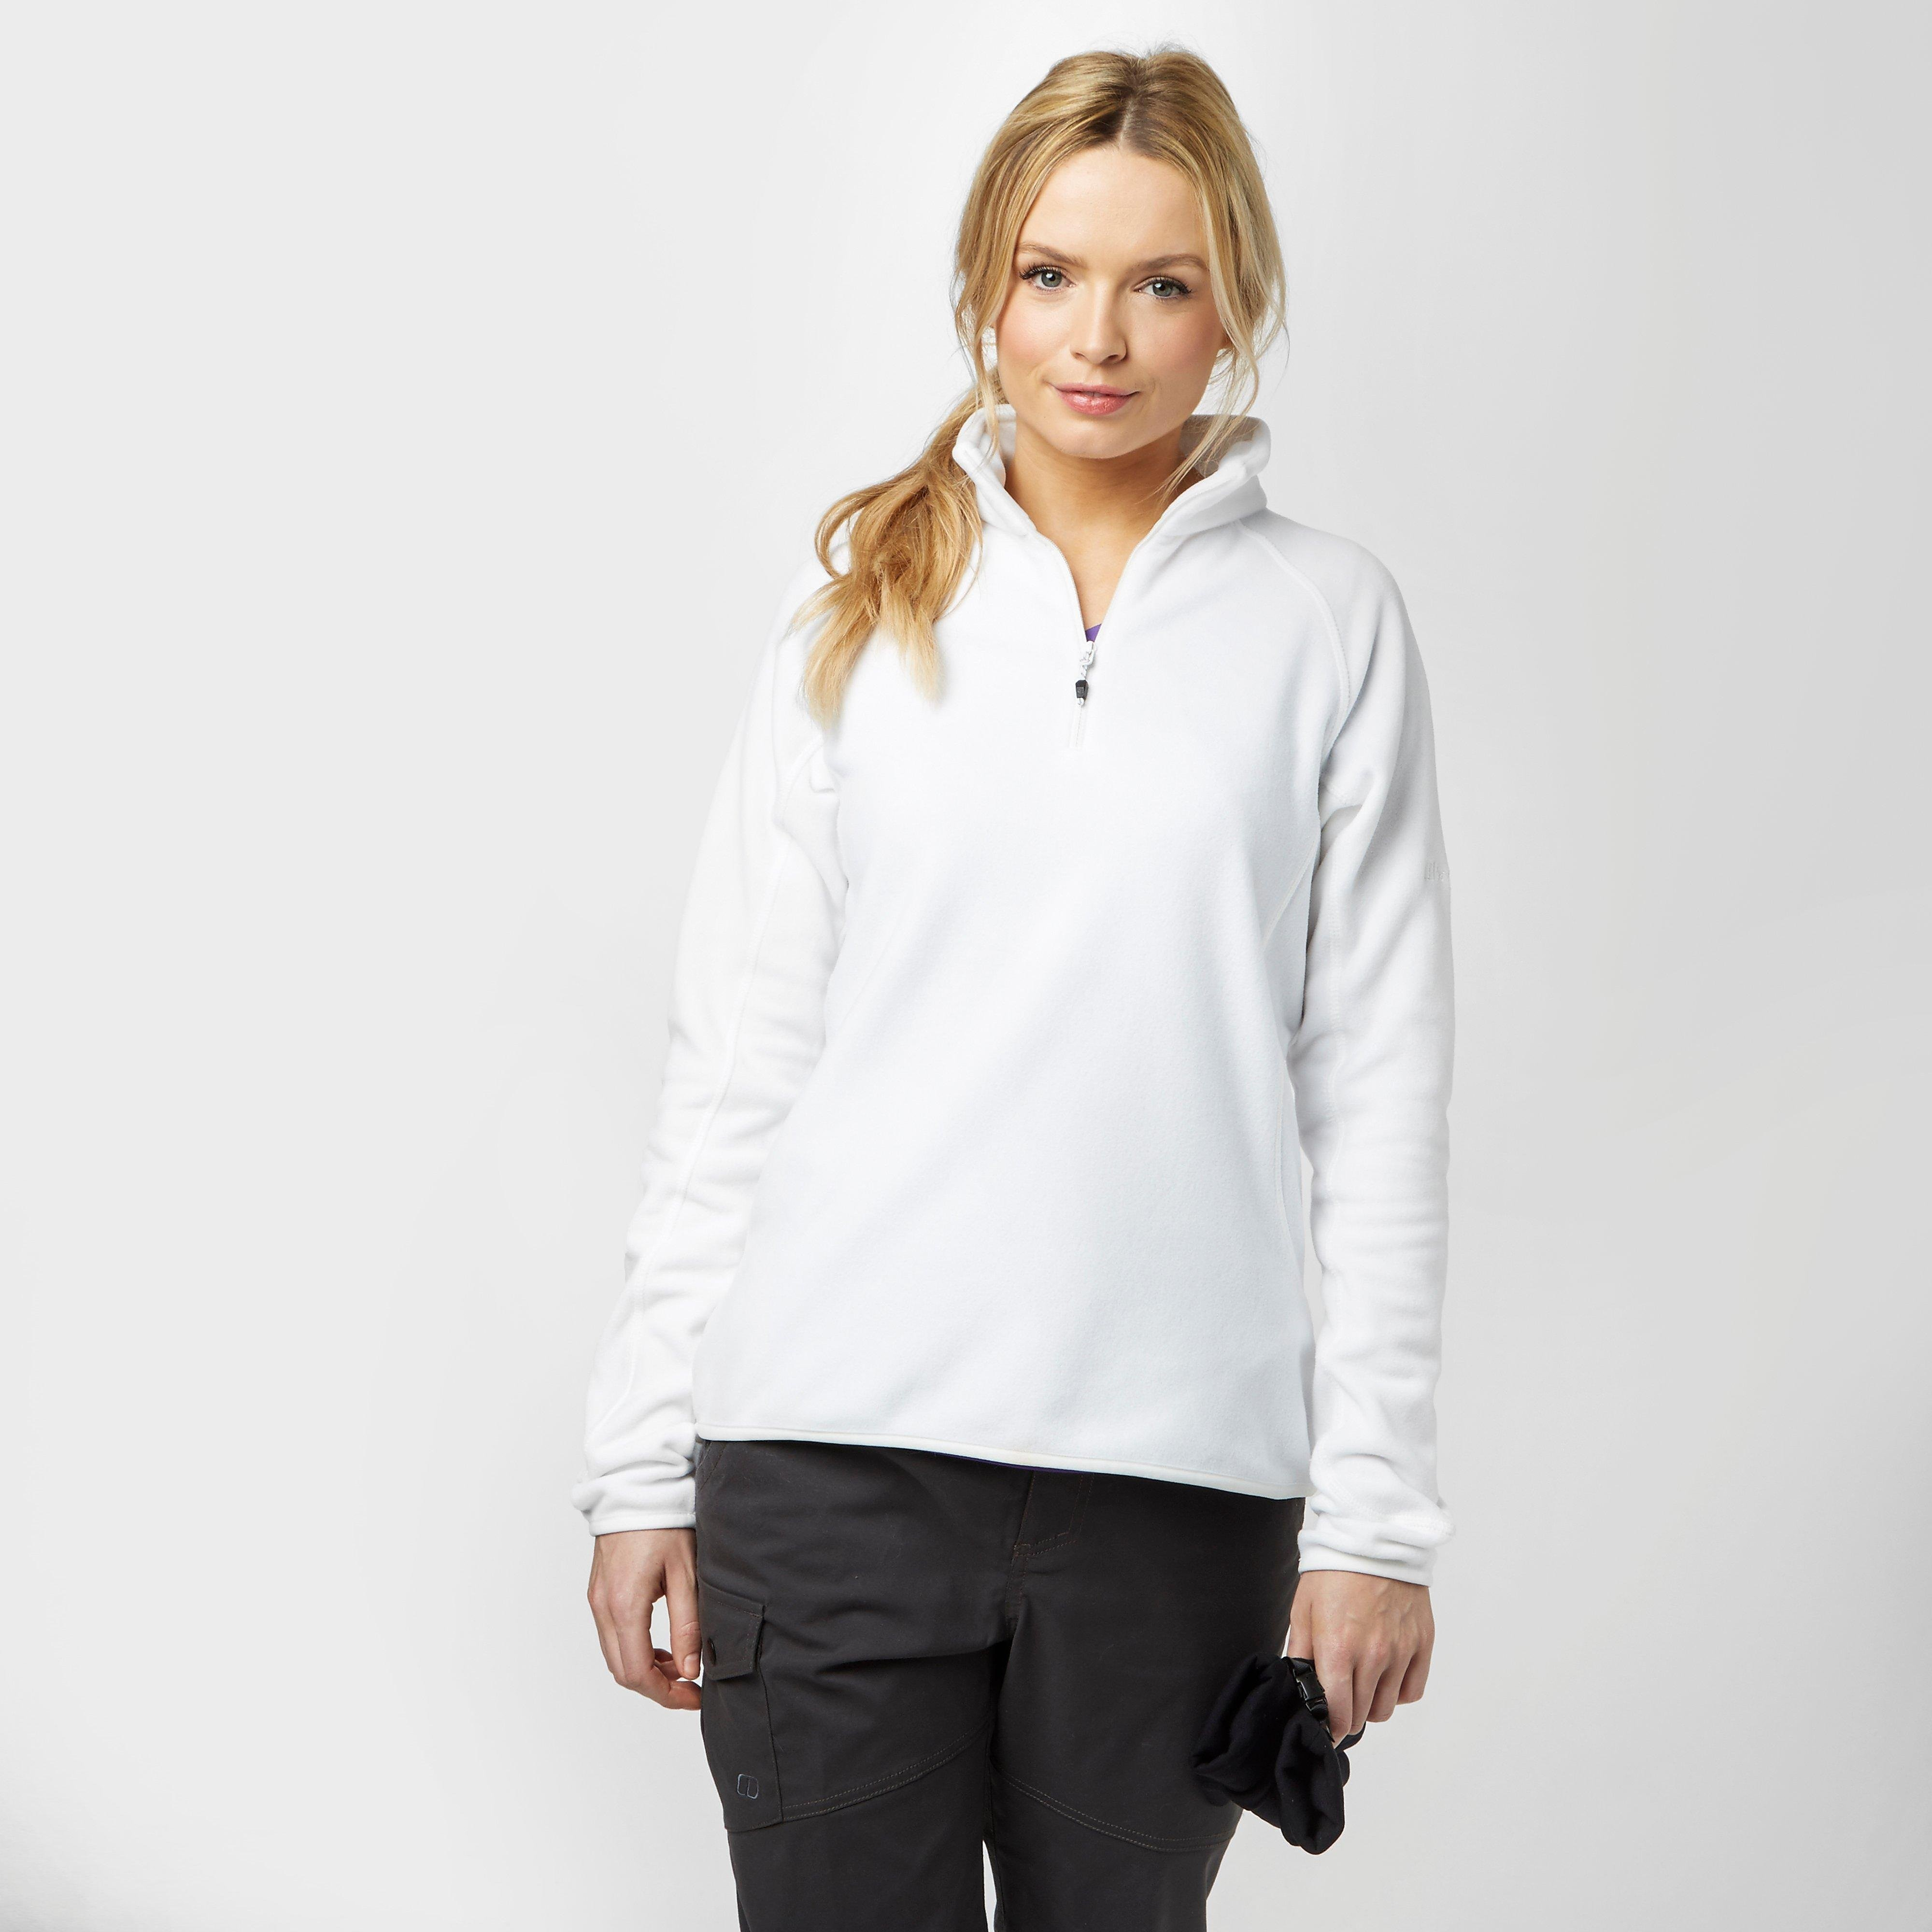 Berghaus Hartsop 1/2 Zip Women's Micro Fleece